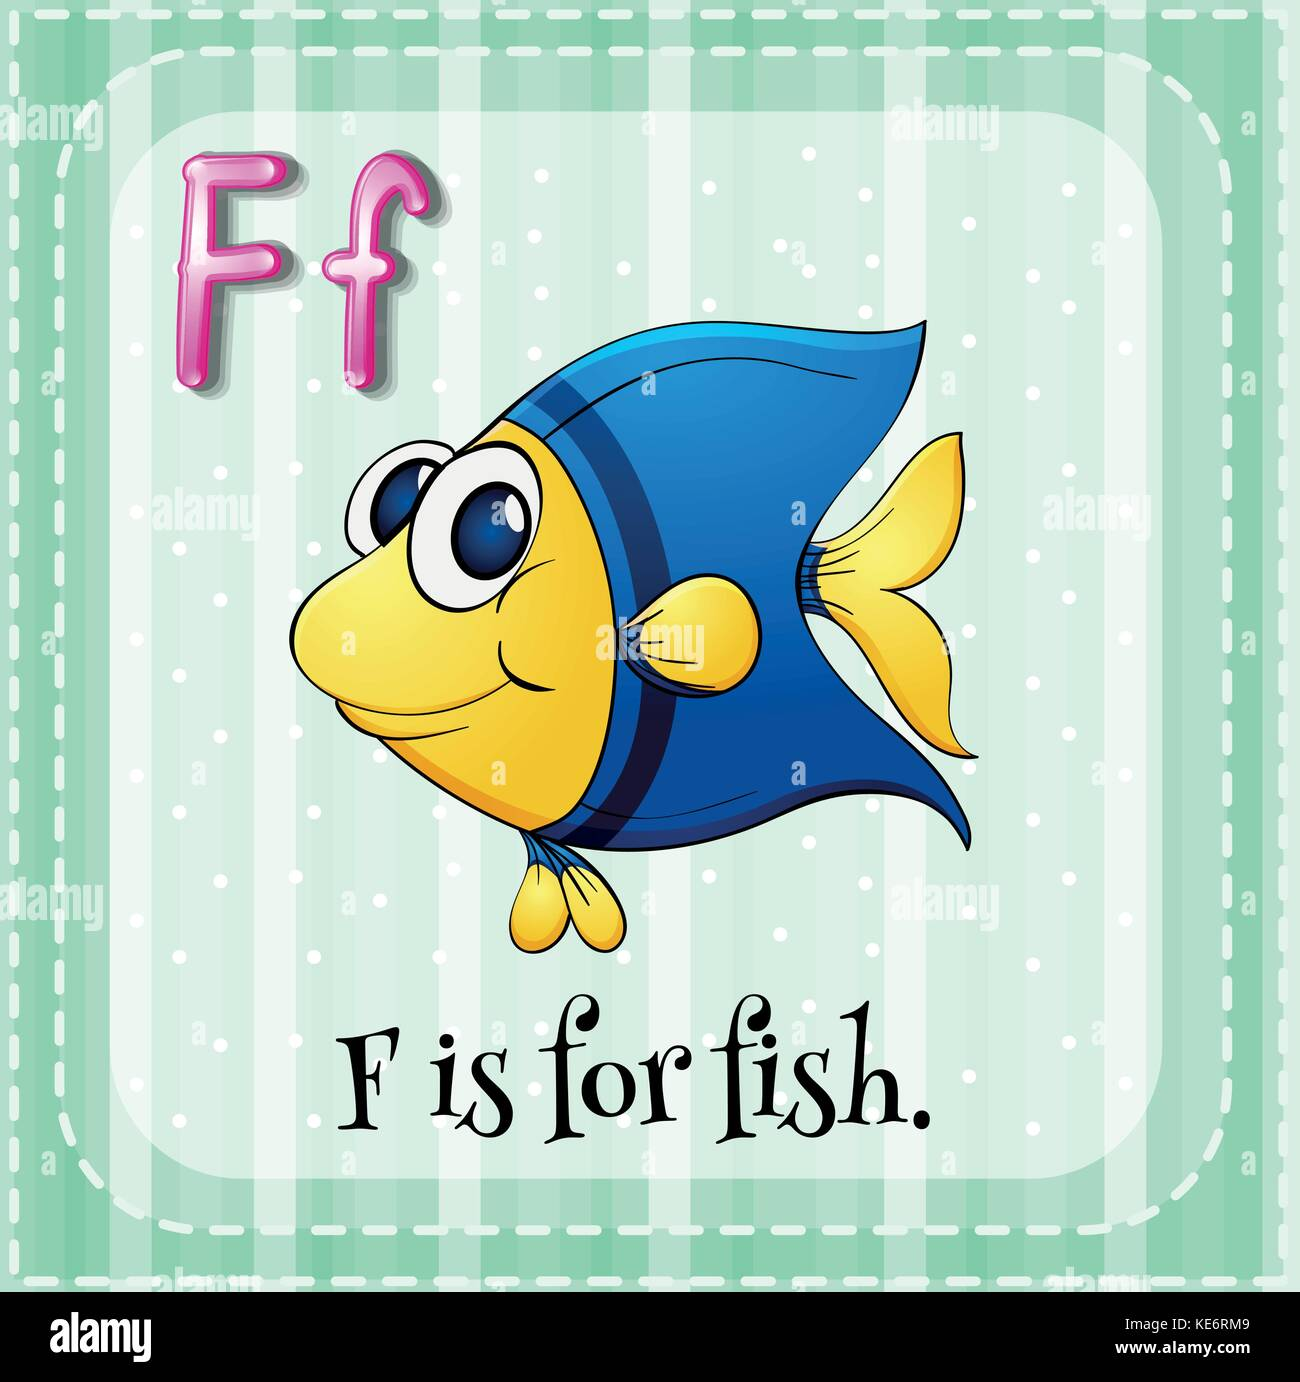 Flashcard Letter F Is For Fish Stock Vector Art Amp Illustration Vector Image